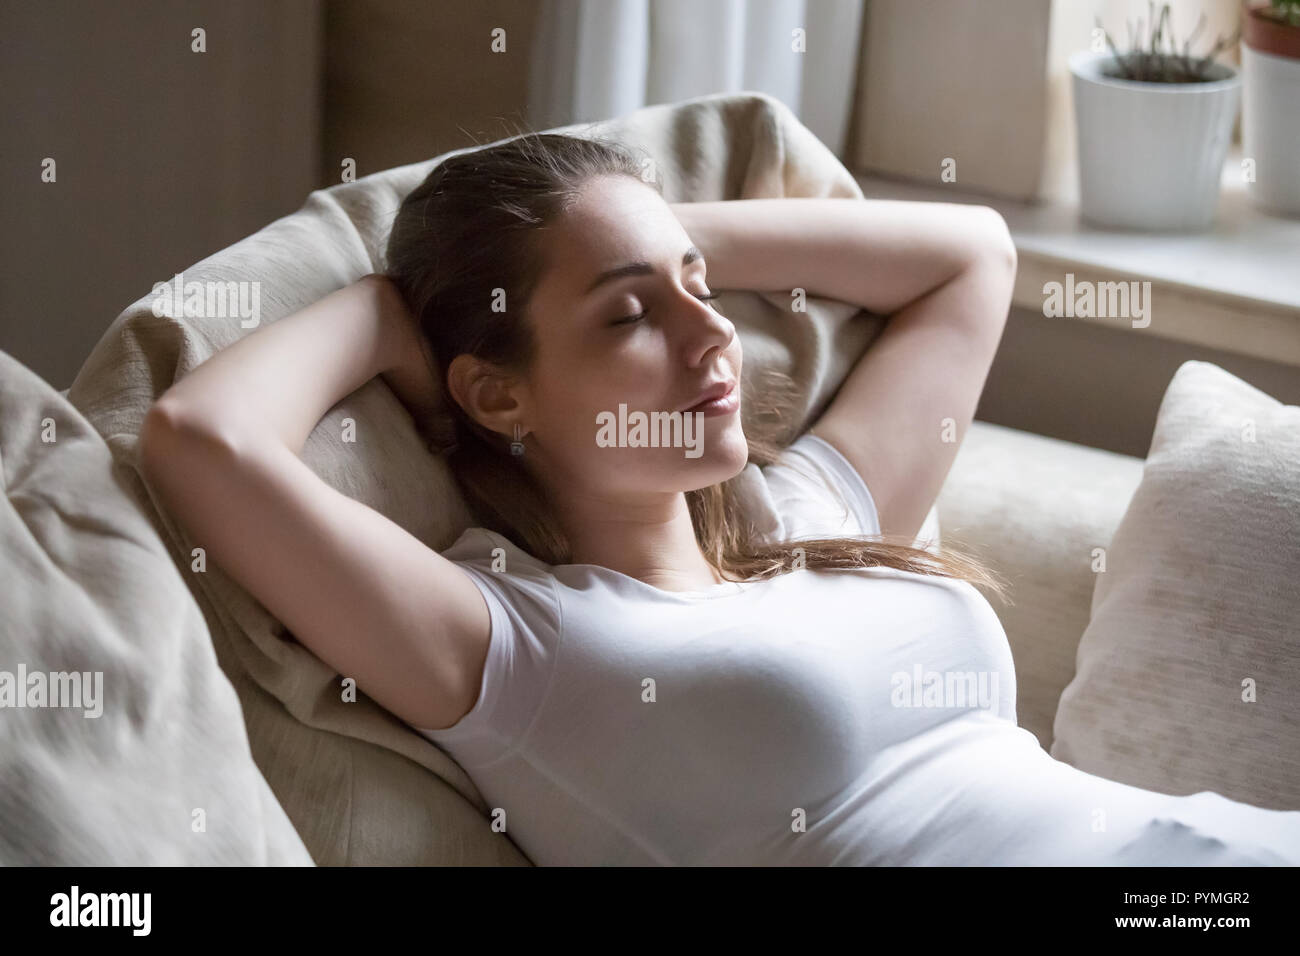 Young positive woman lying on couch relaxing at home - Stock Image